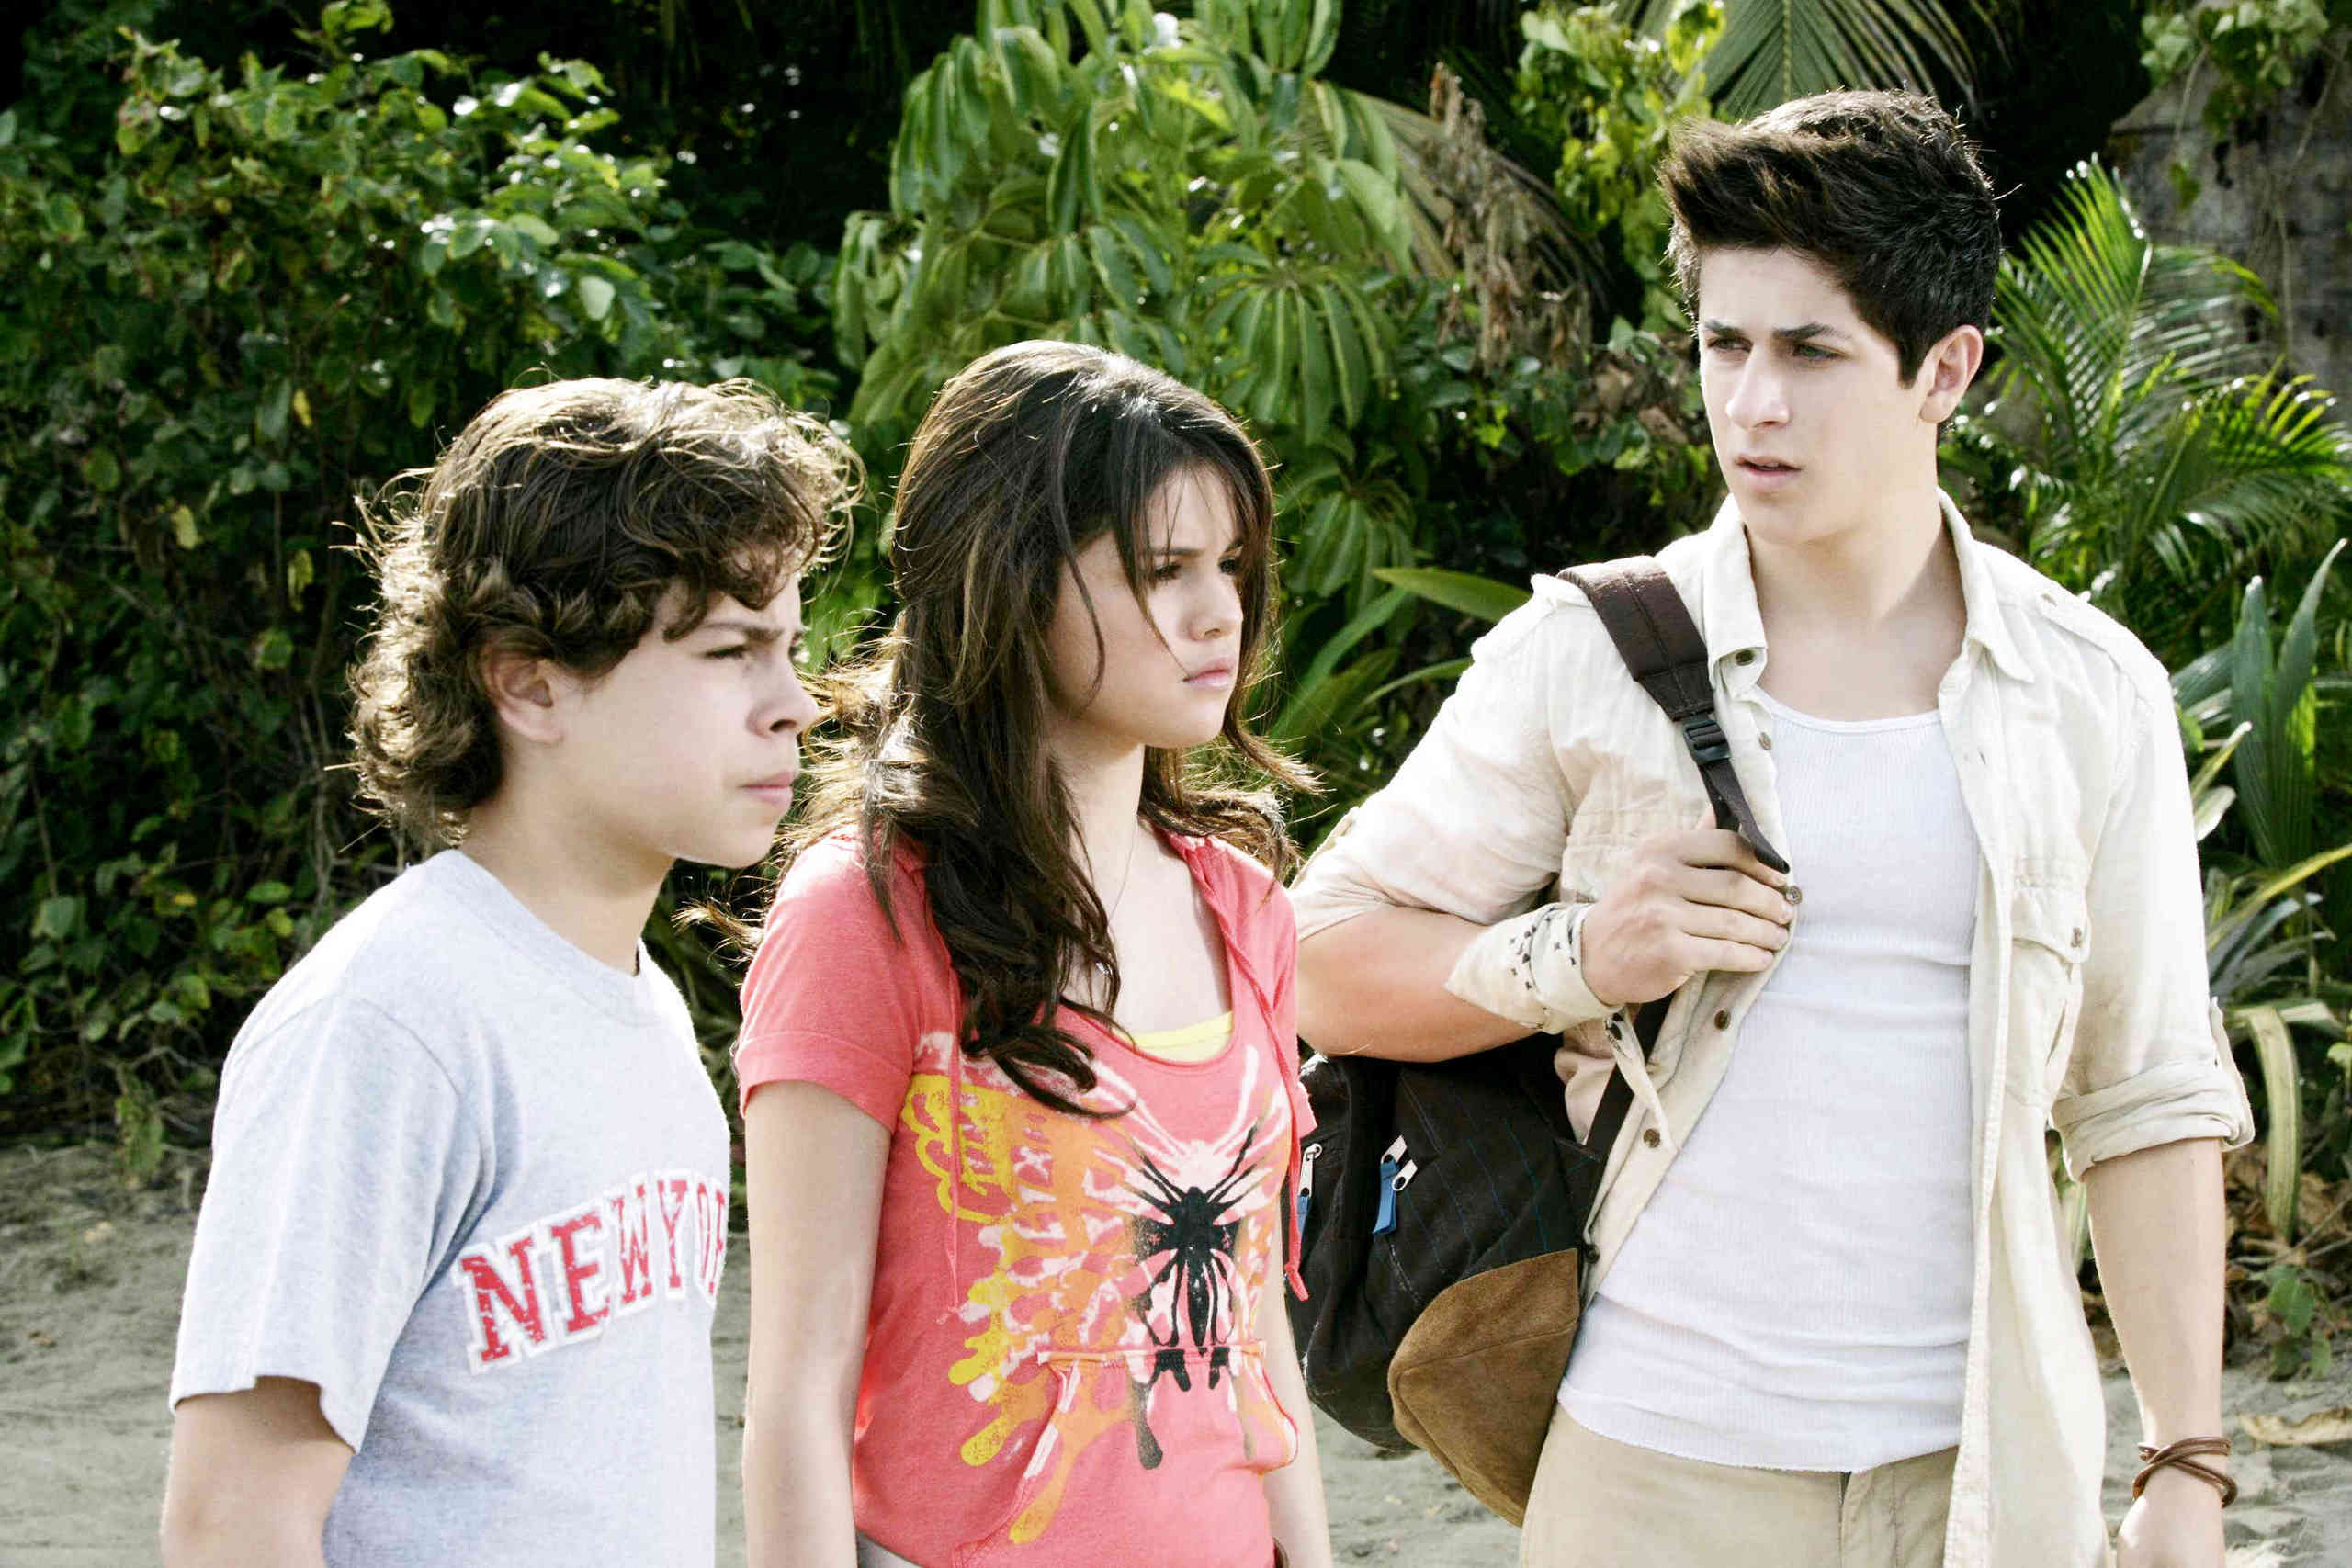 Sorry, that Nude male wizards of waverly place